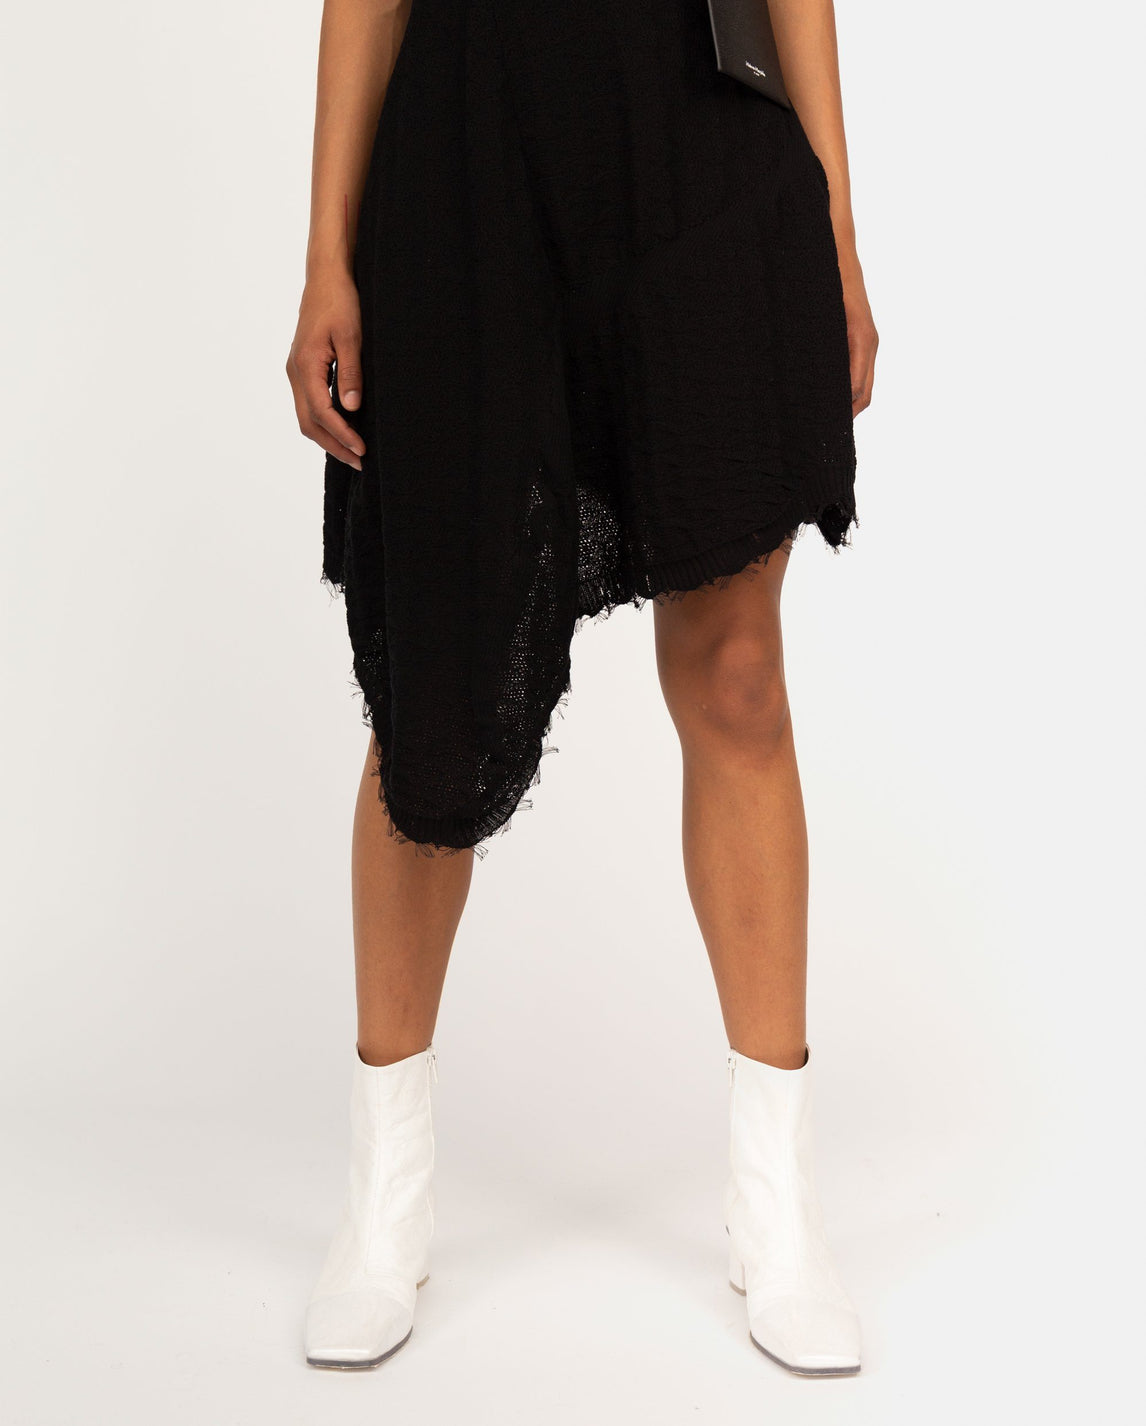 Evolved Crochet Knit Dress - Black WOMENS VEJAS